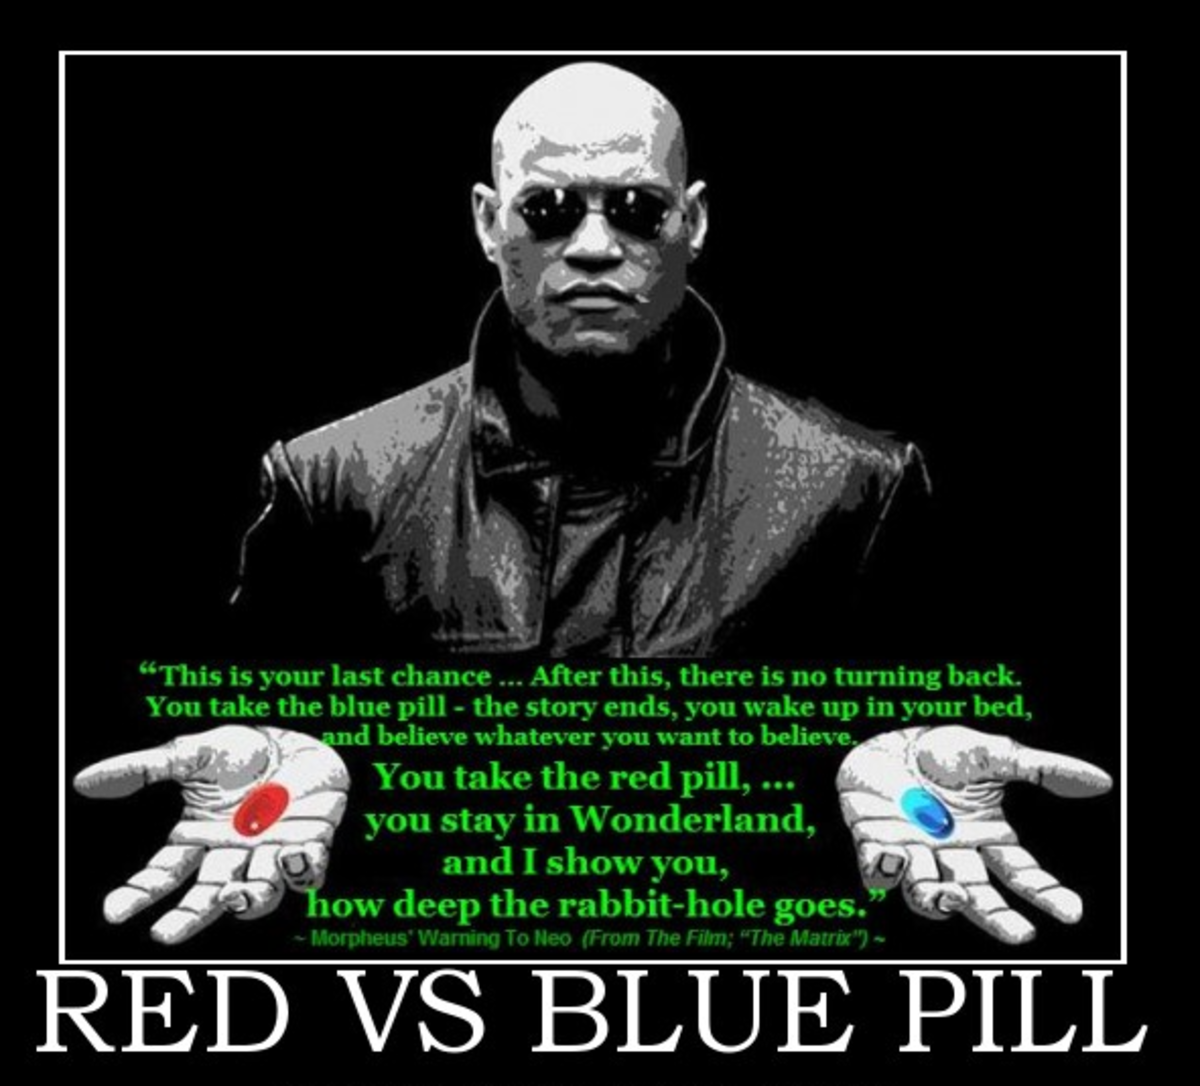 Blue pill - blissful ignorance, Red pill - the sometimes painful truth